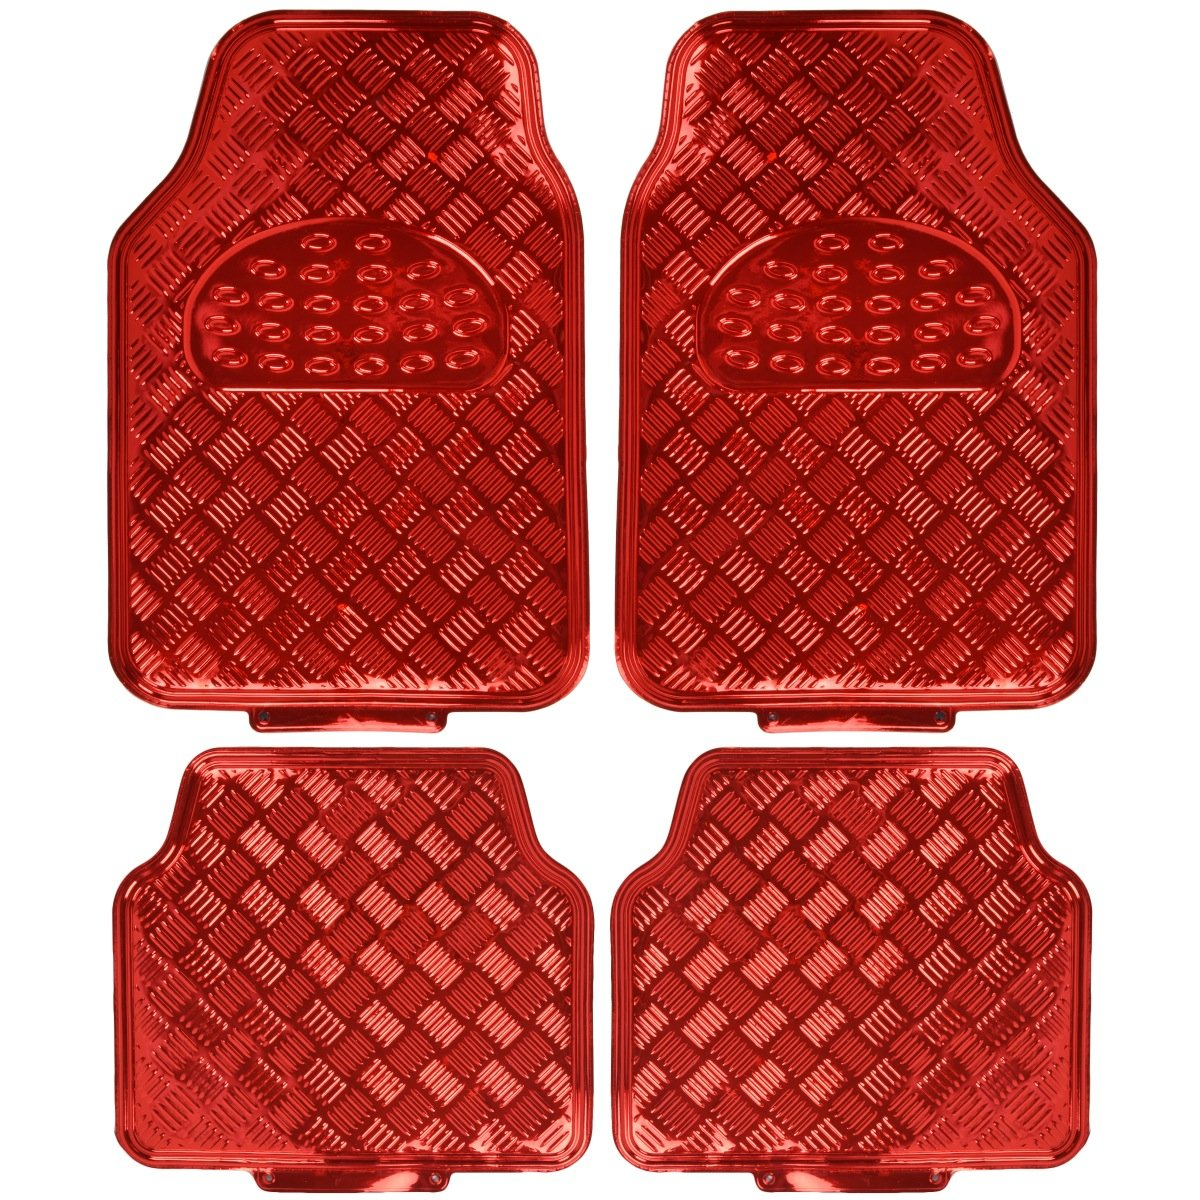 proliner mats pin rubber cars amazon heavy duty com auto weather for all gray floor liner